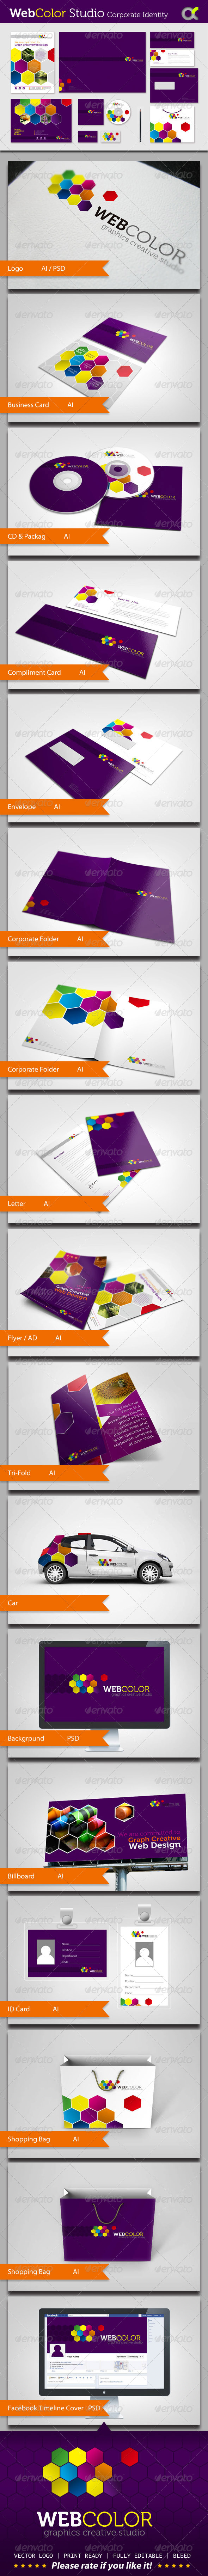 WebColor Studio Corporate Identity - Stationery Print Templates